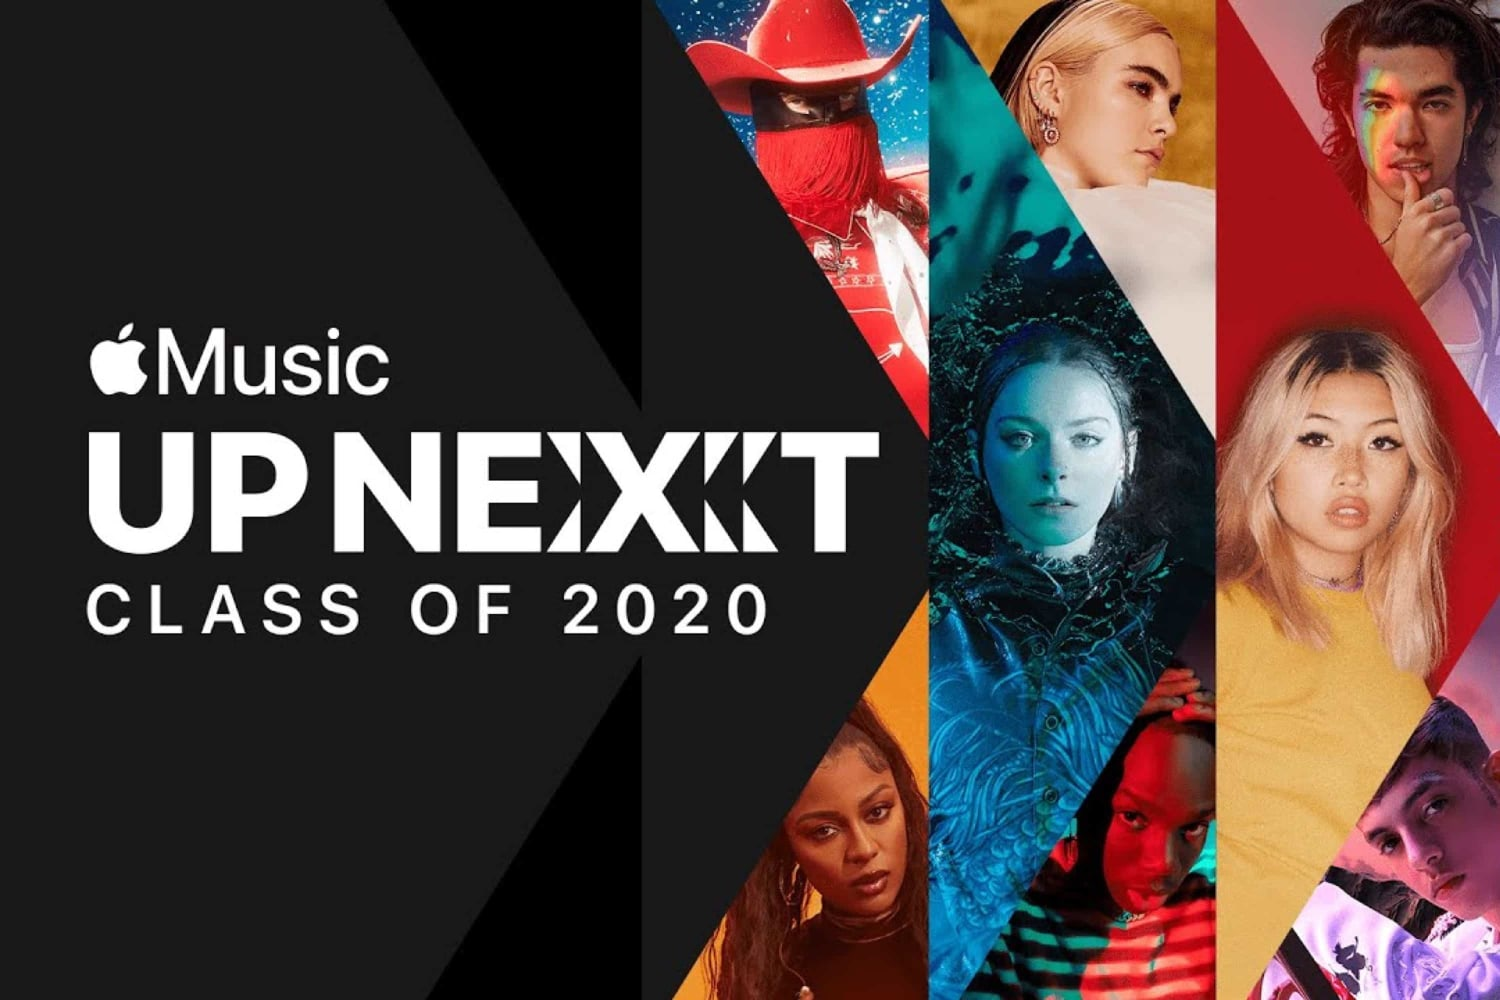 a-look-back-at-apple-music-s-up-next-class-of-2020-20201207-1